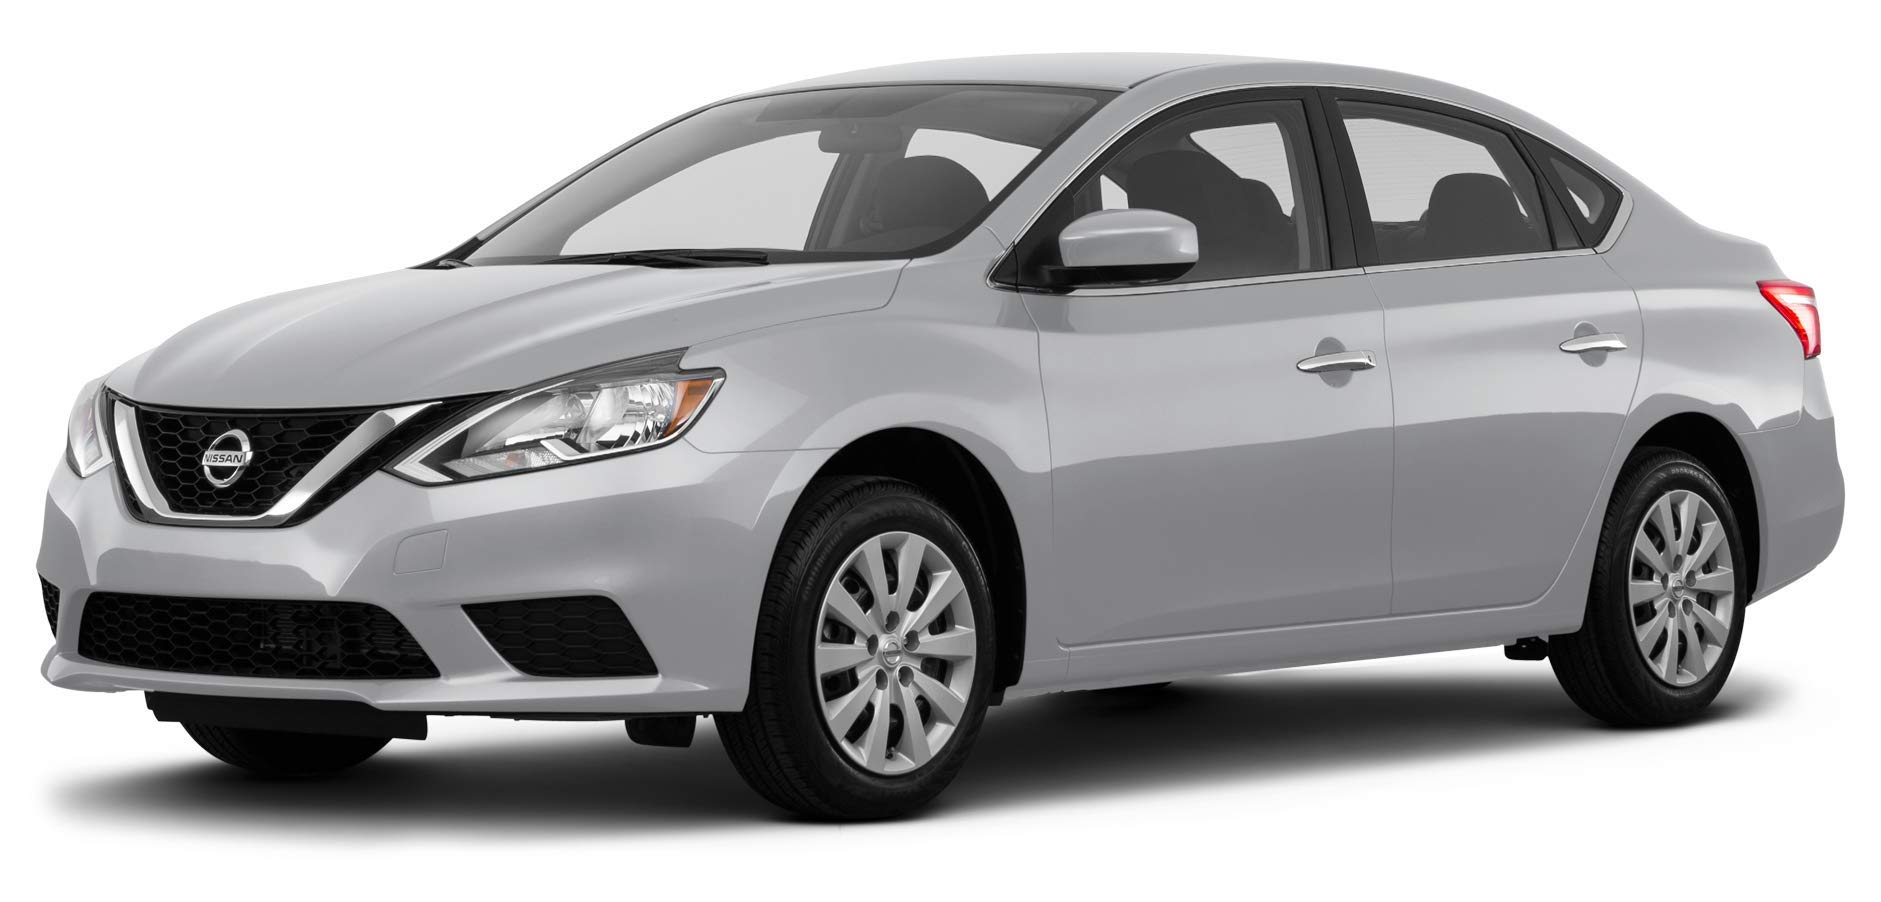 Amazon Com 2016 Nissan Sentra Fe S Reviews Images And Specs Vehicles